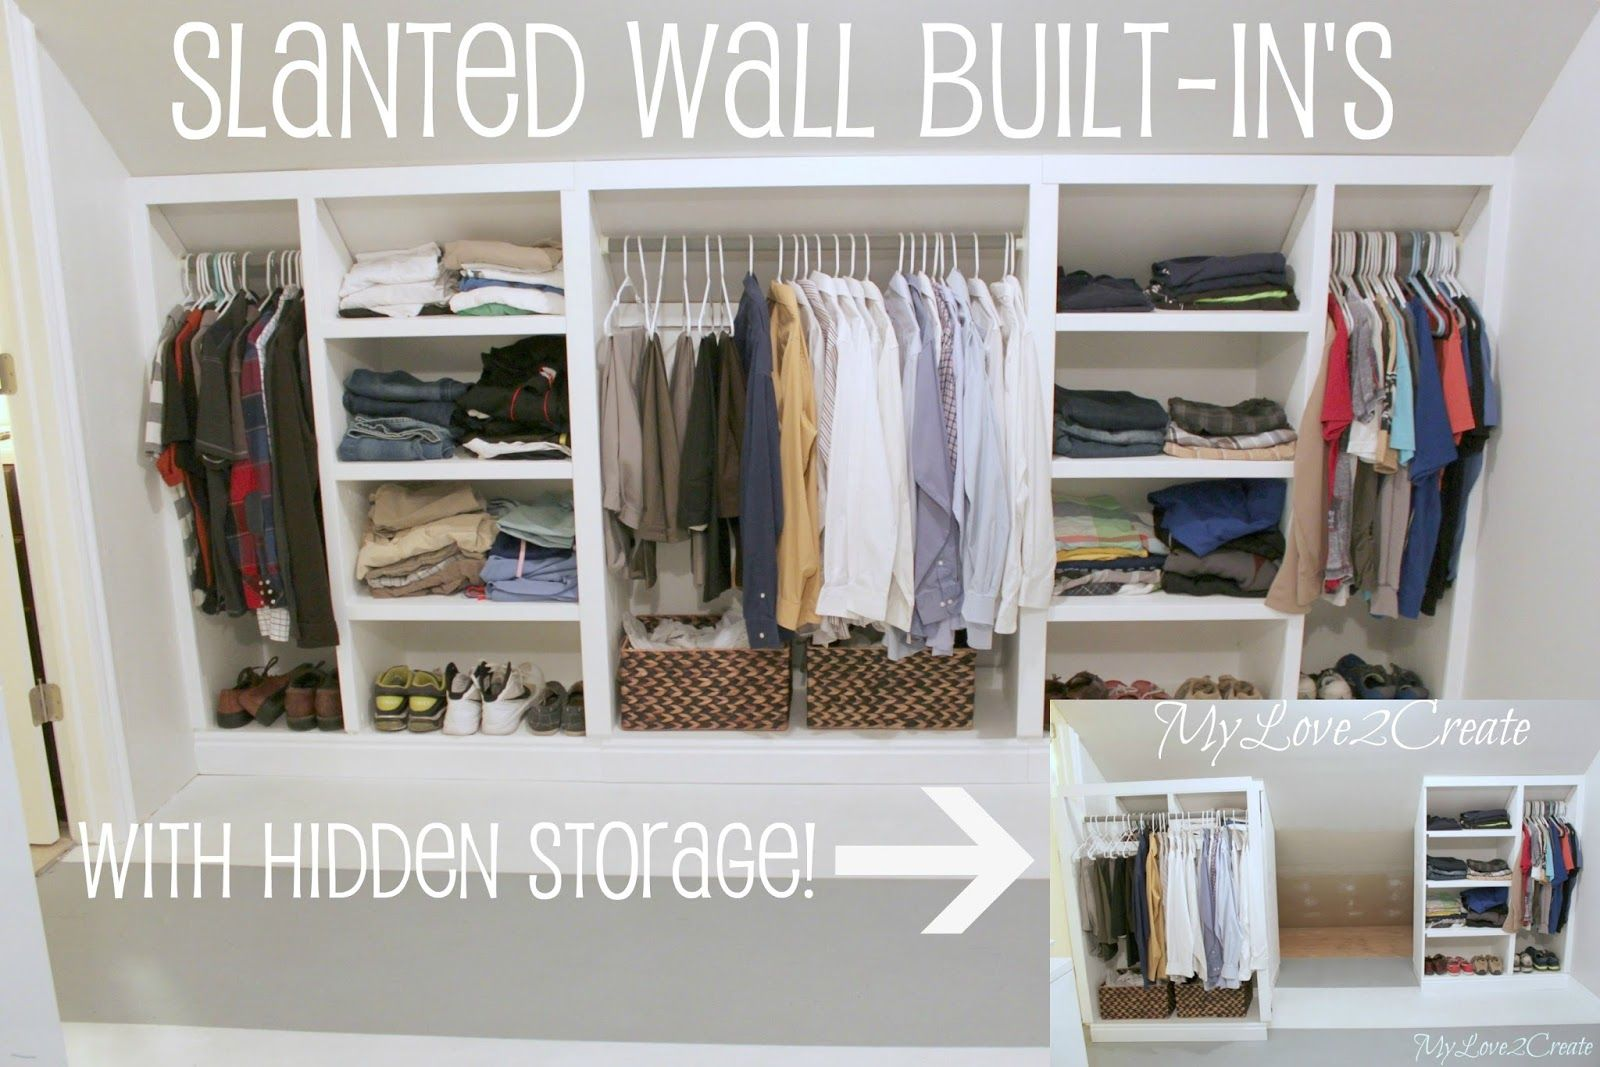 Slanted Wall builtins with Hidden Storage tutorial Tiny House